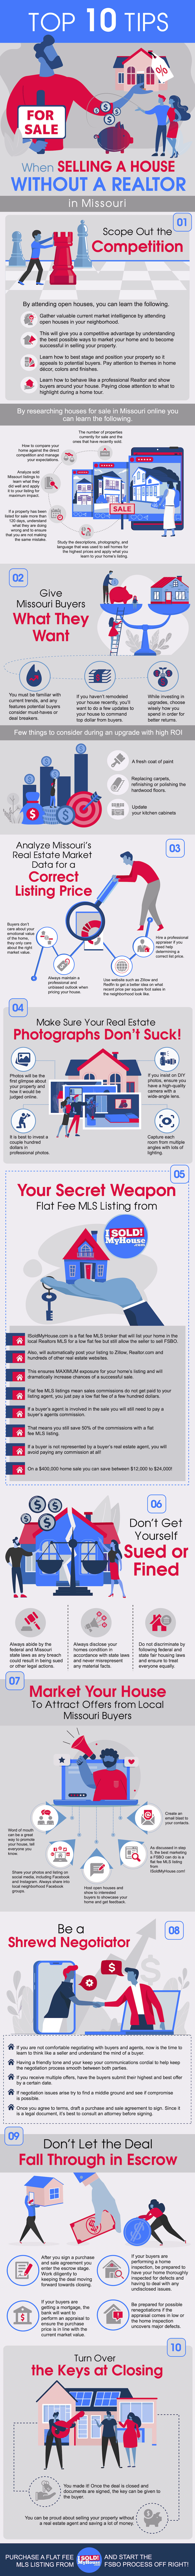 infographic of the 10 steps to sell a house in missouri without an agent